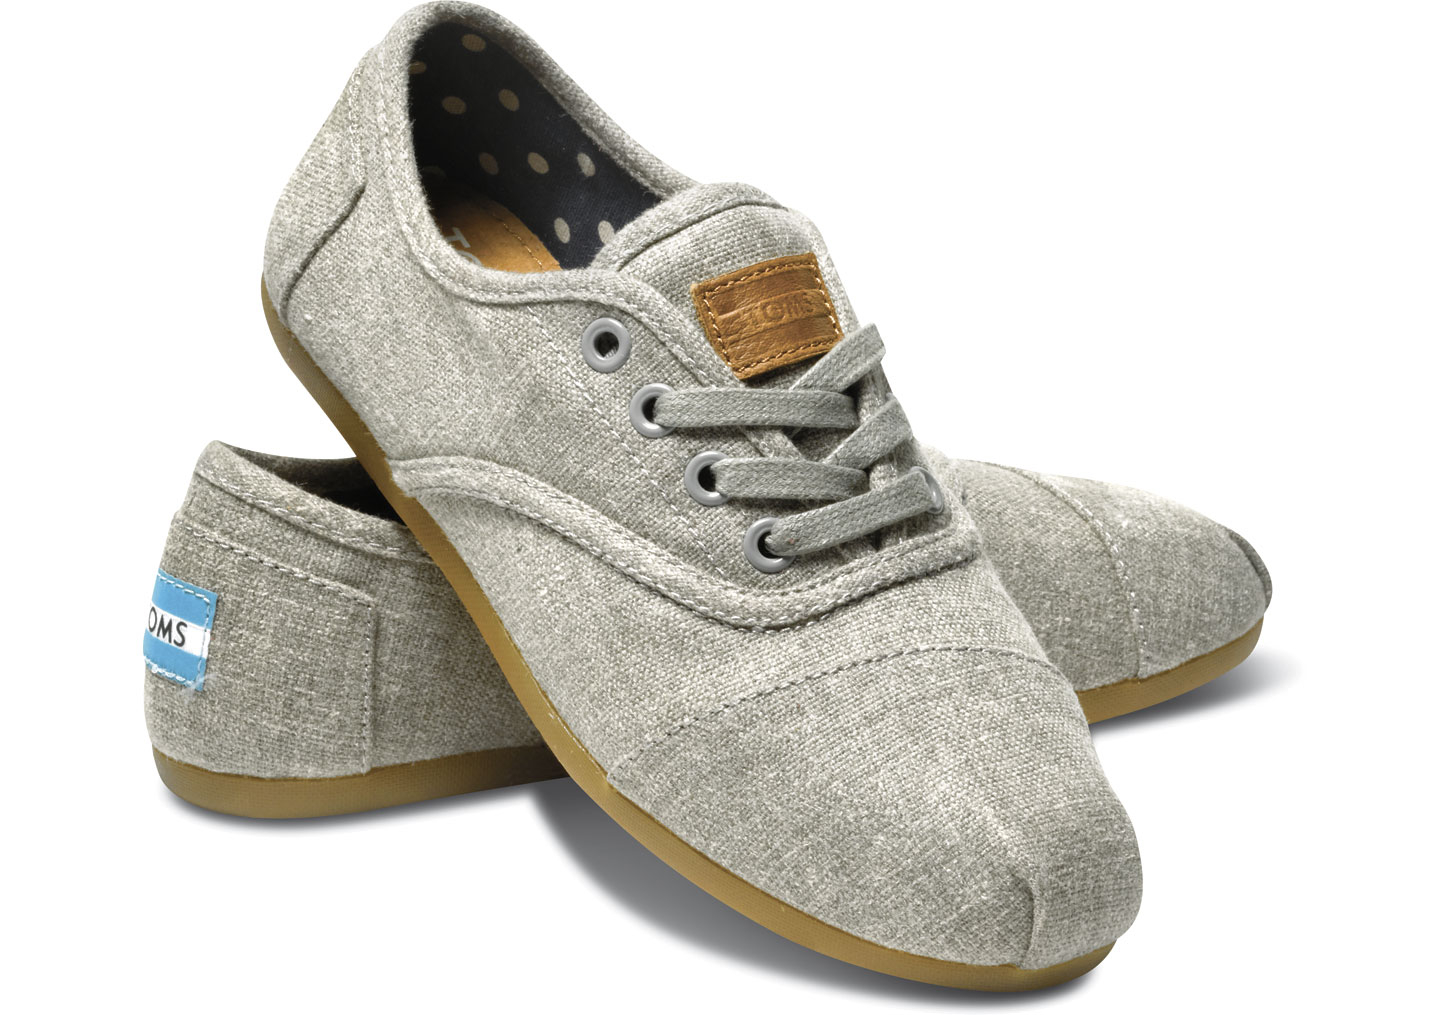 Grey Toms Womens Shoes